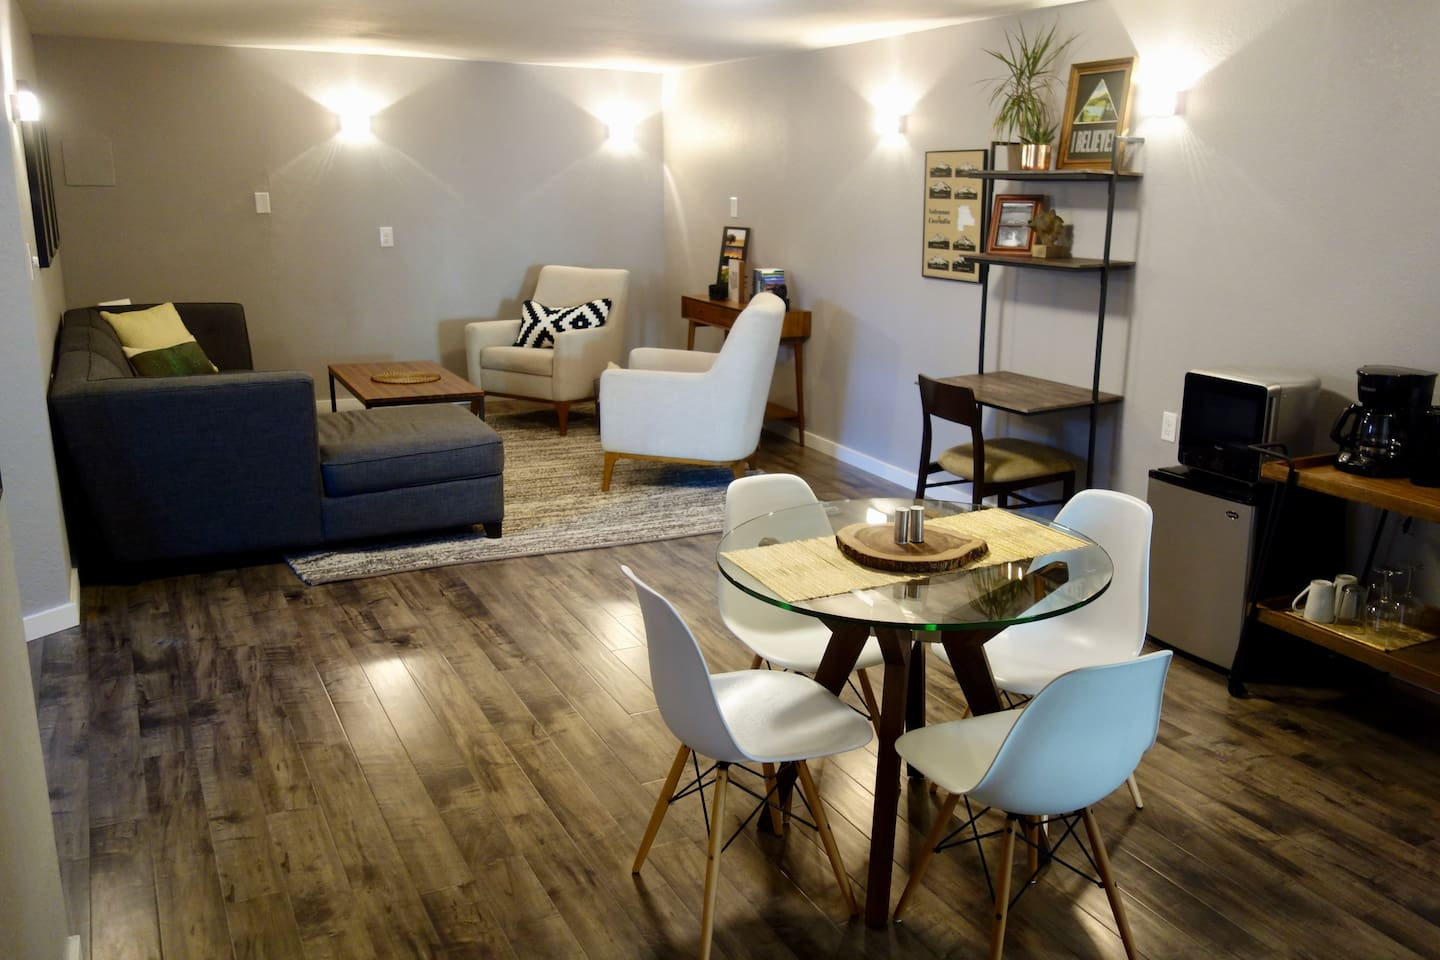 The private living room and dining space